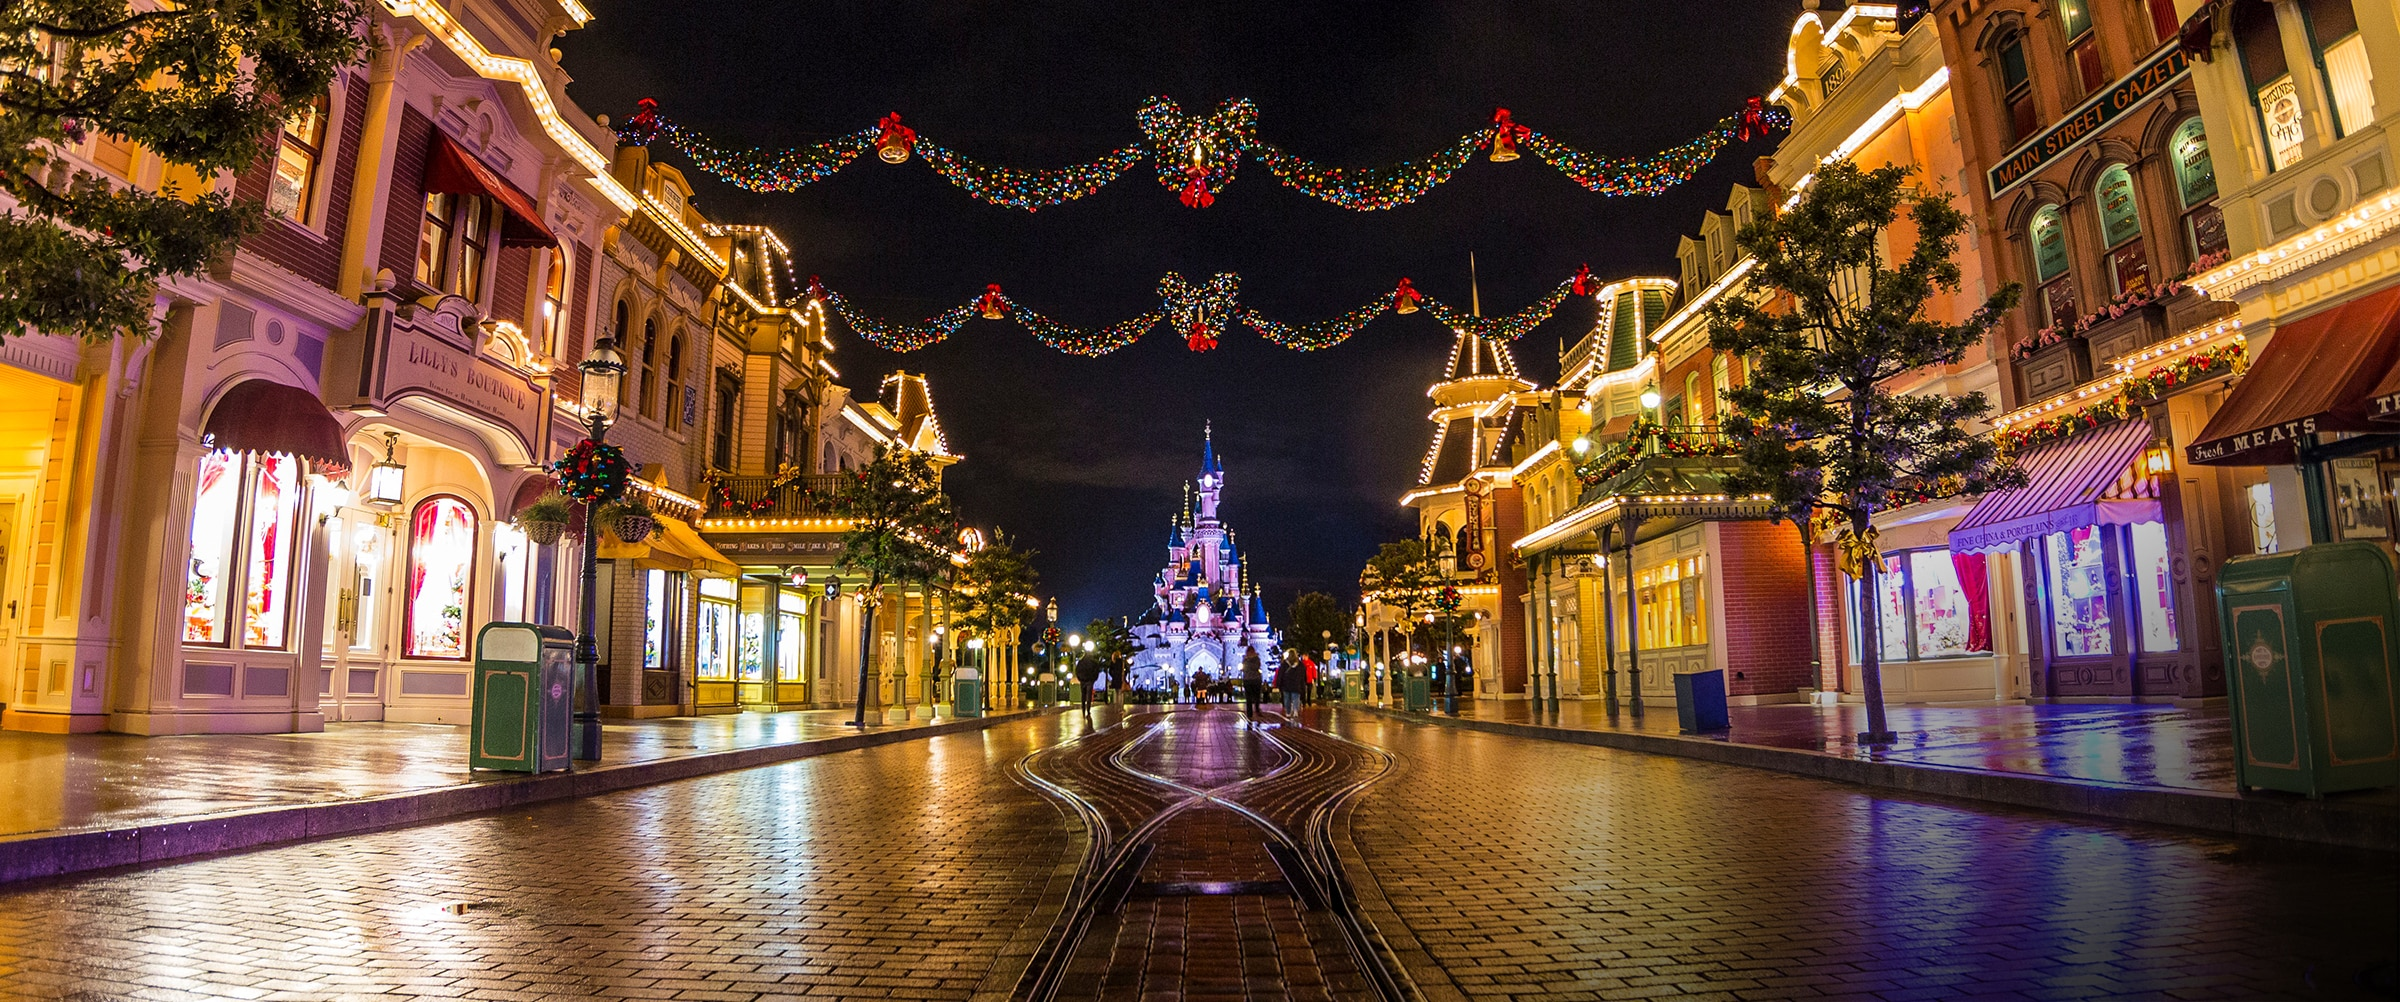 Celebrate Christmas at Disneyland Paris